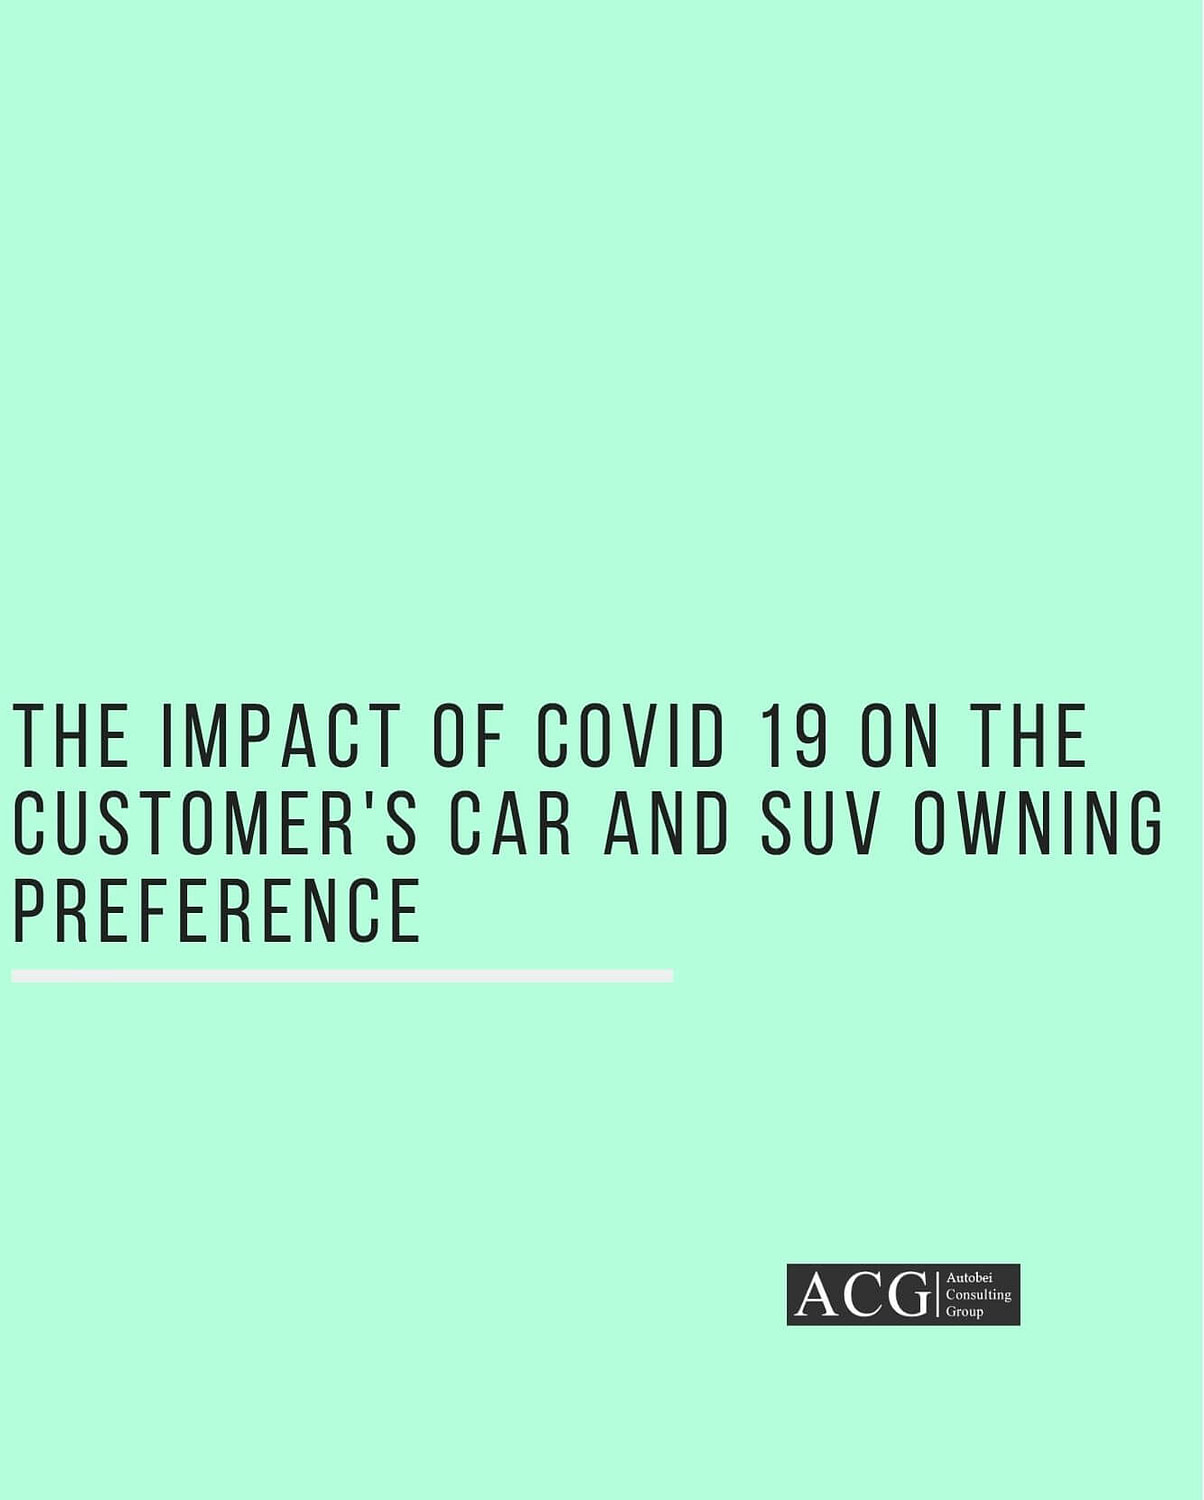 The Impact of COVID 19 on the Customer's Car owning preference